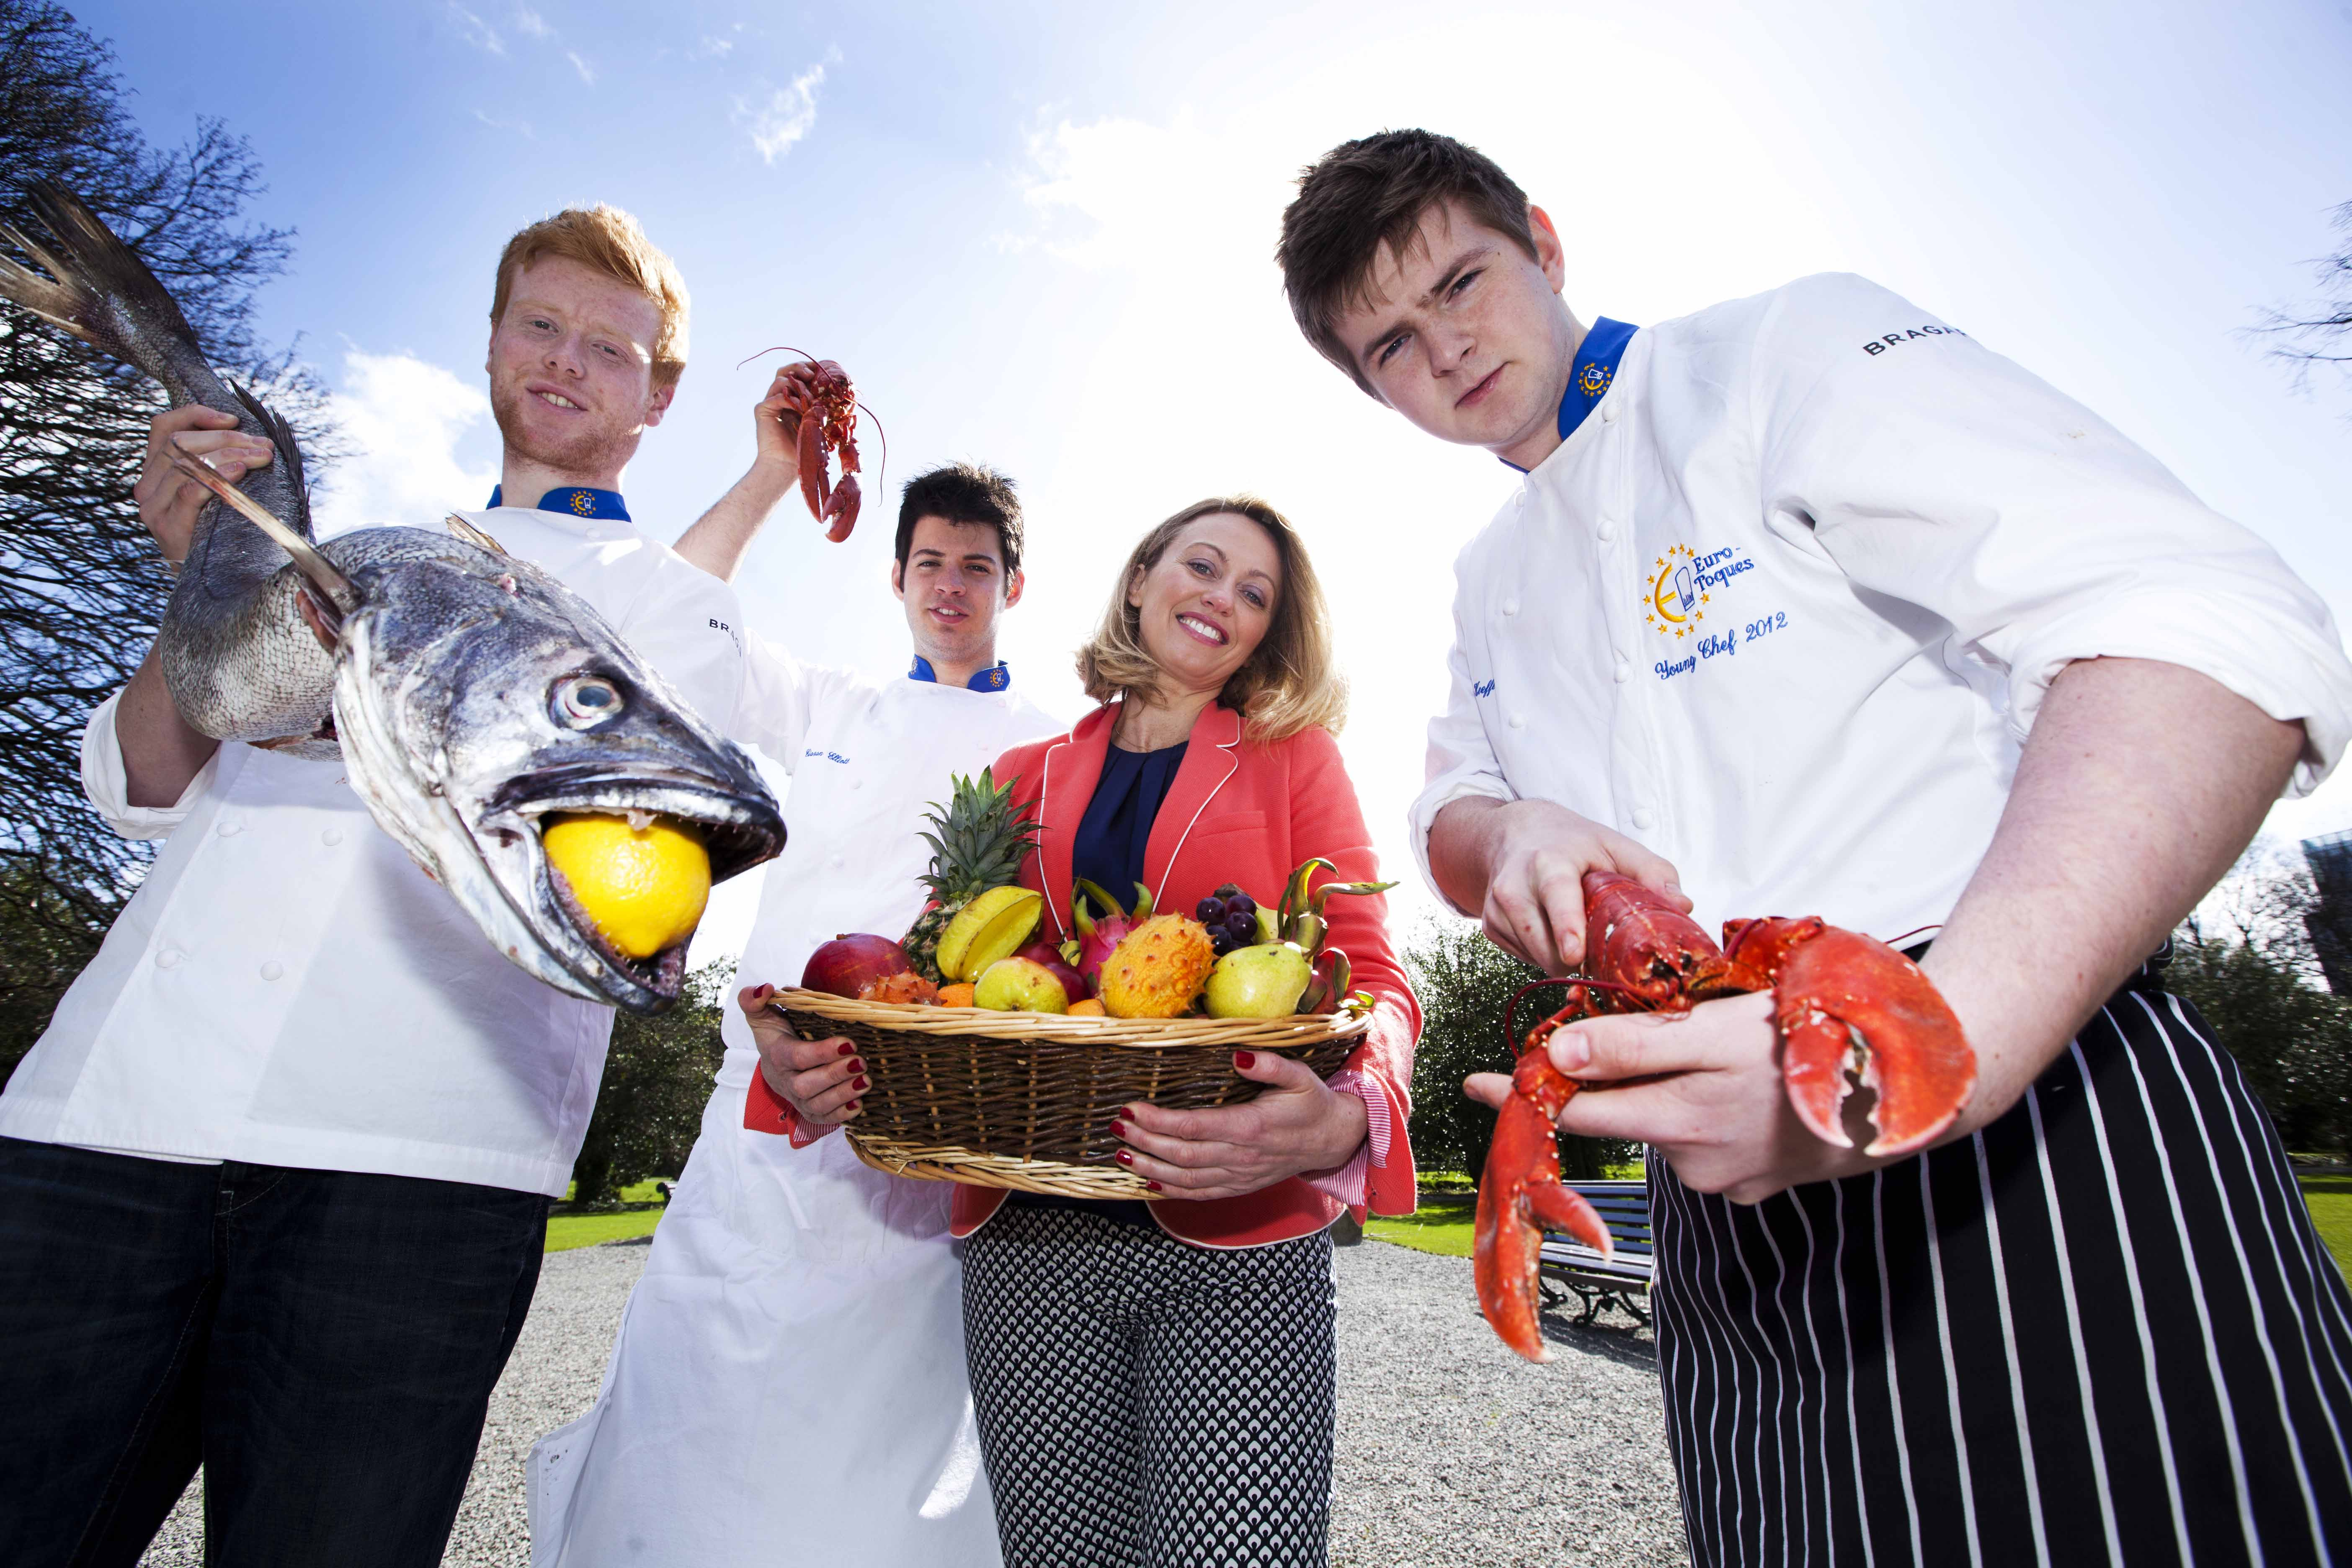 NO REPRO FEE. 16/4/2013. Clodagh McKenna with three of Irelands brightest culinary stars Ciaran Elliot, Mark Moriarty and Jack O Keeffe at the launch of this years Taste of Dublin in the Iveagh Gardens. The food and wine festival ,Taste of Dublin which is sponsored by Electrolux takes place  from Thursday 13th until 16th June in the beautiful Iveagh Gardens. For more information on this event you can go to www.tasteofdublin.ie.Photo Leon Farrell/Photocall Ireland.